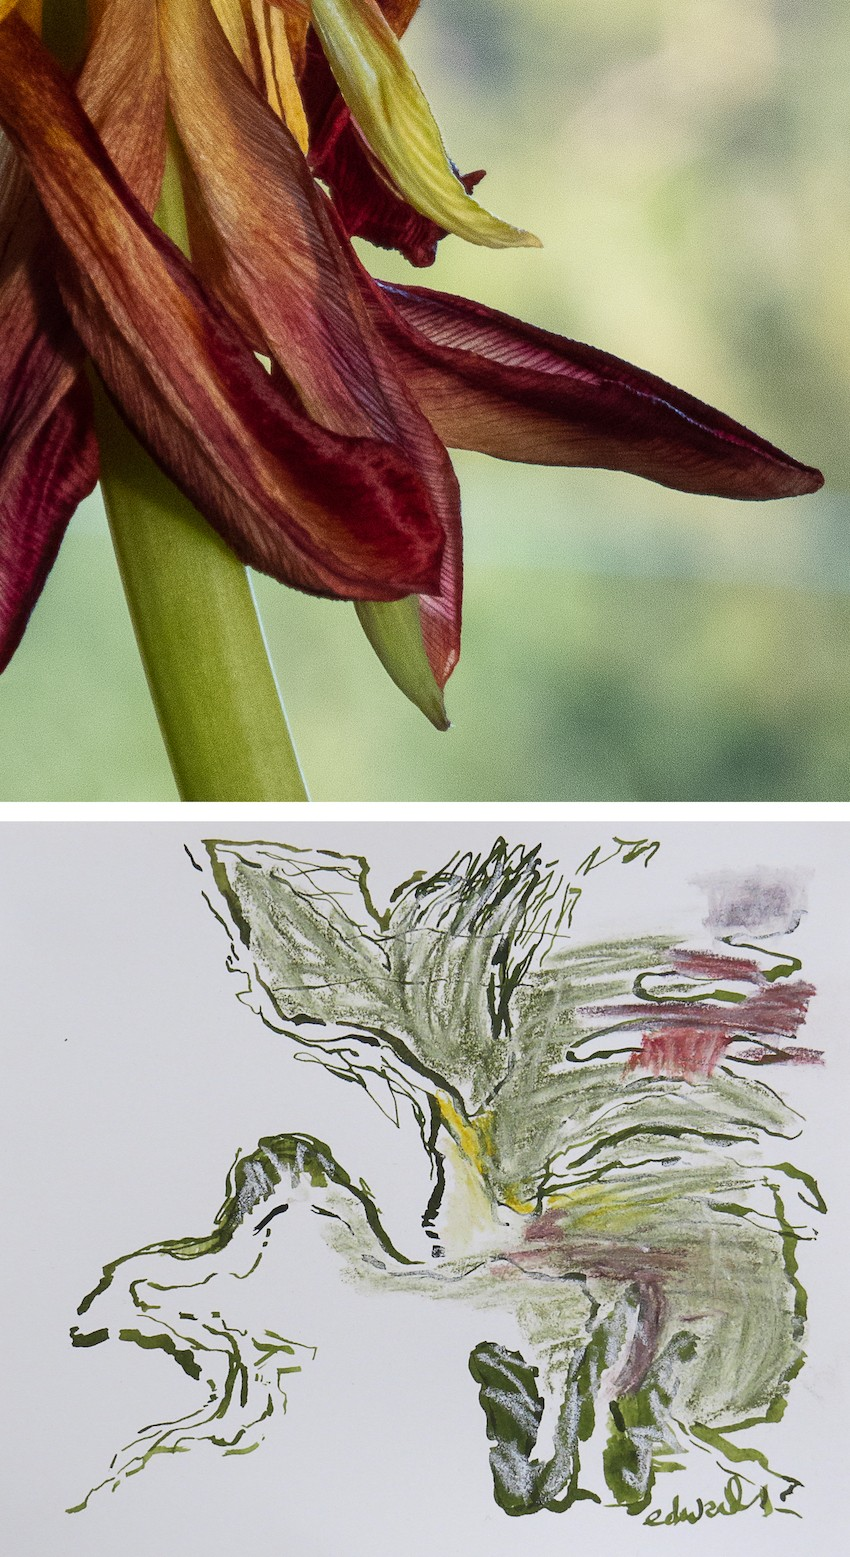 untitled (petals) digital print with drawing by Canadian photographer artist barbra edwards pender island BC